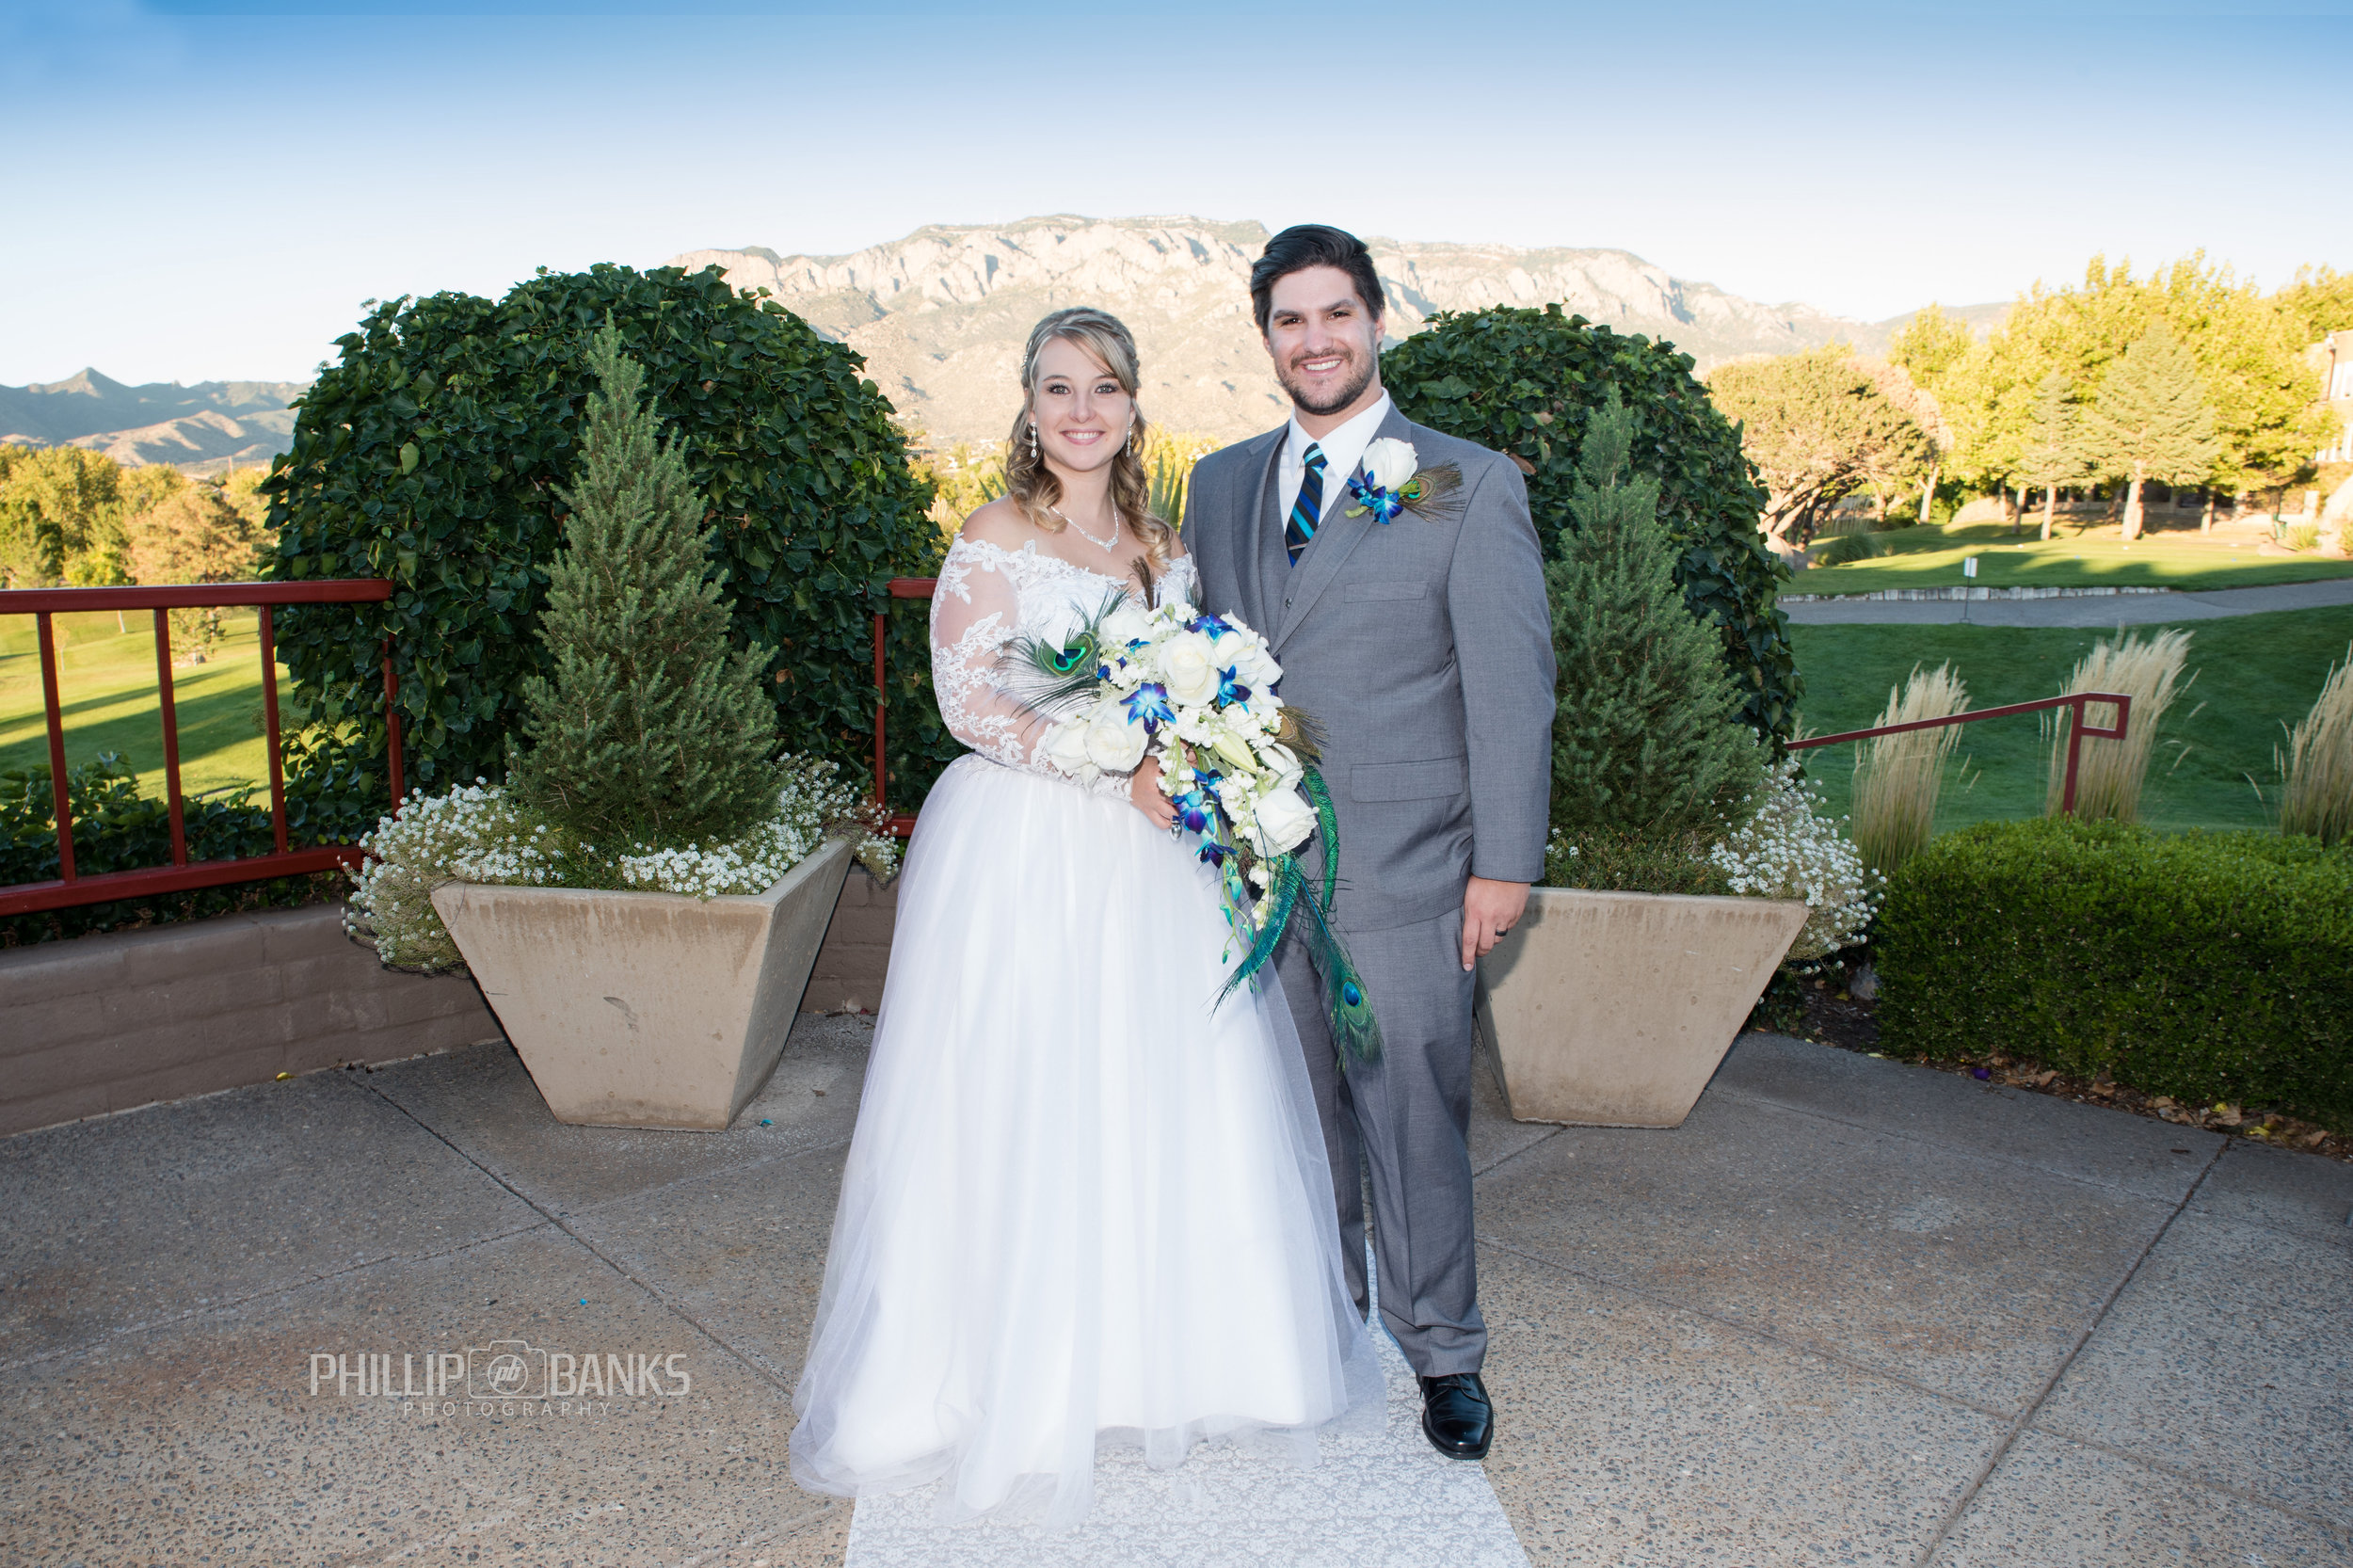 Albuquerque Wedding Photographer Phillip Banks Photography-Jessica and Zachary-93withlogo.jpg